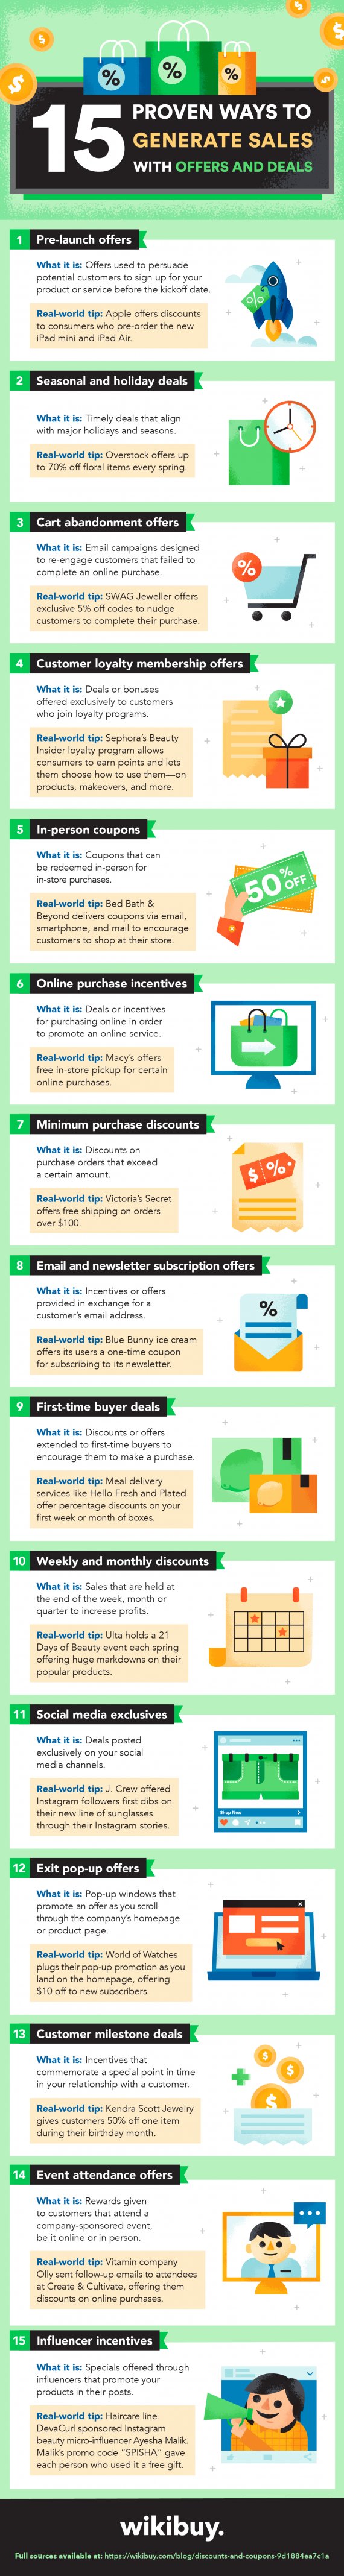 15 ways to generate sales using offers and deals